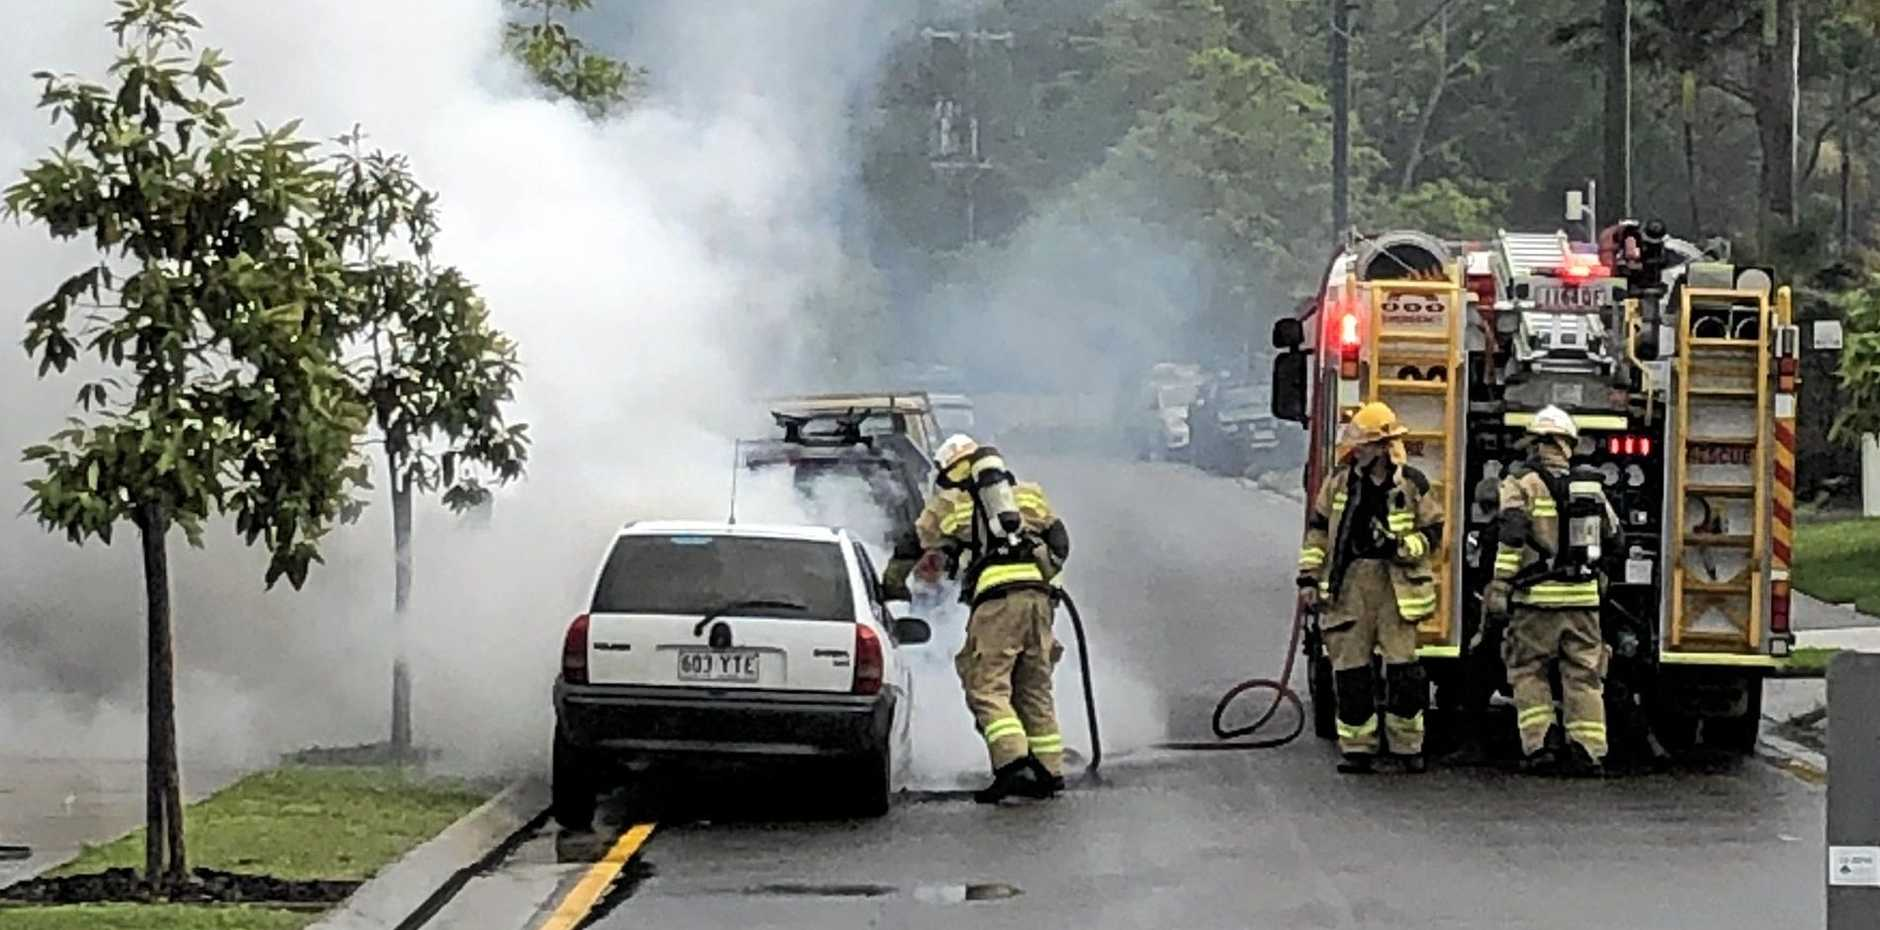 Firefighters saved a second car from being burned after the hatchback went up in flames at Buderim this morning.